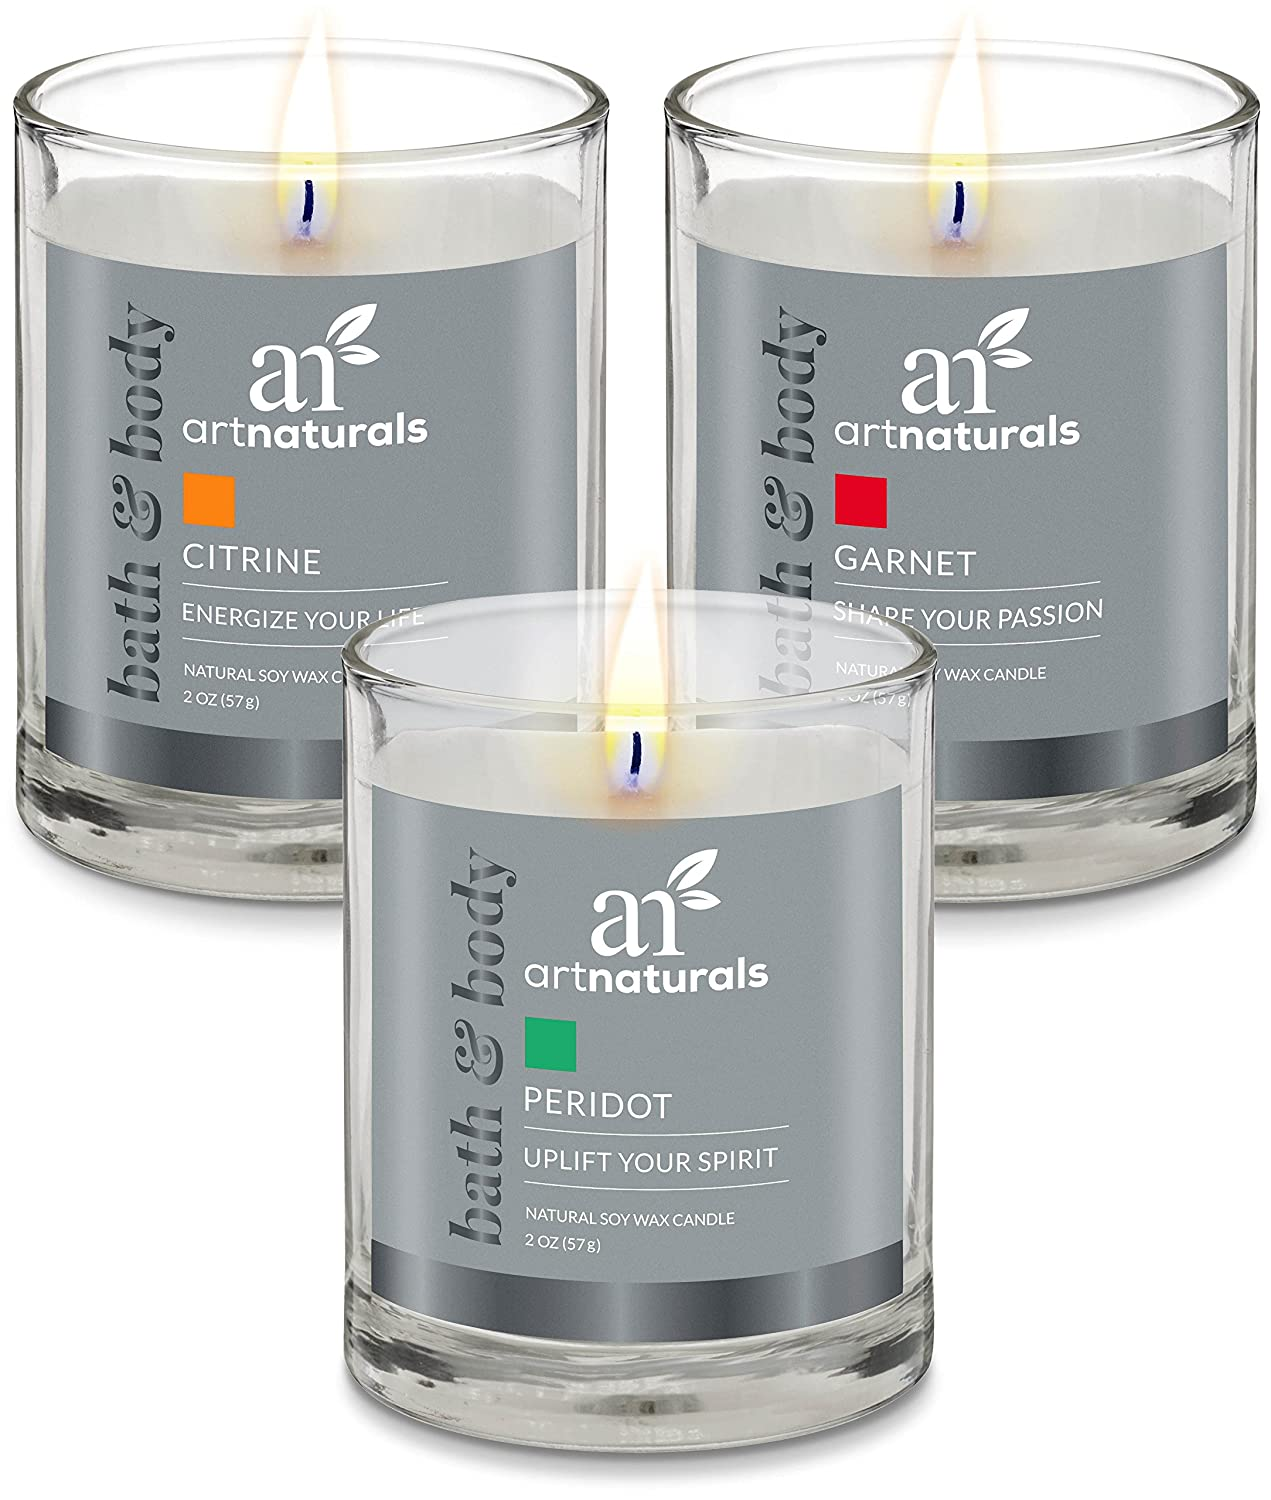 ArtNaturals Scented Aromatherapy Candle Set – 3 Piece Gift Set of Fragrance Soy Wax - Made in USA with Essential Oils – for Stress Relief and Relaxation ANAA-0602